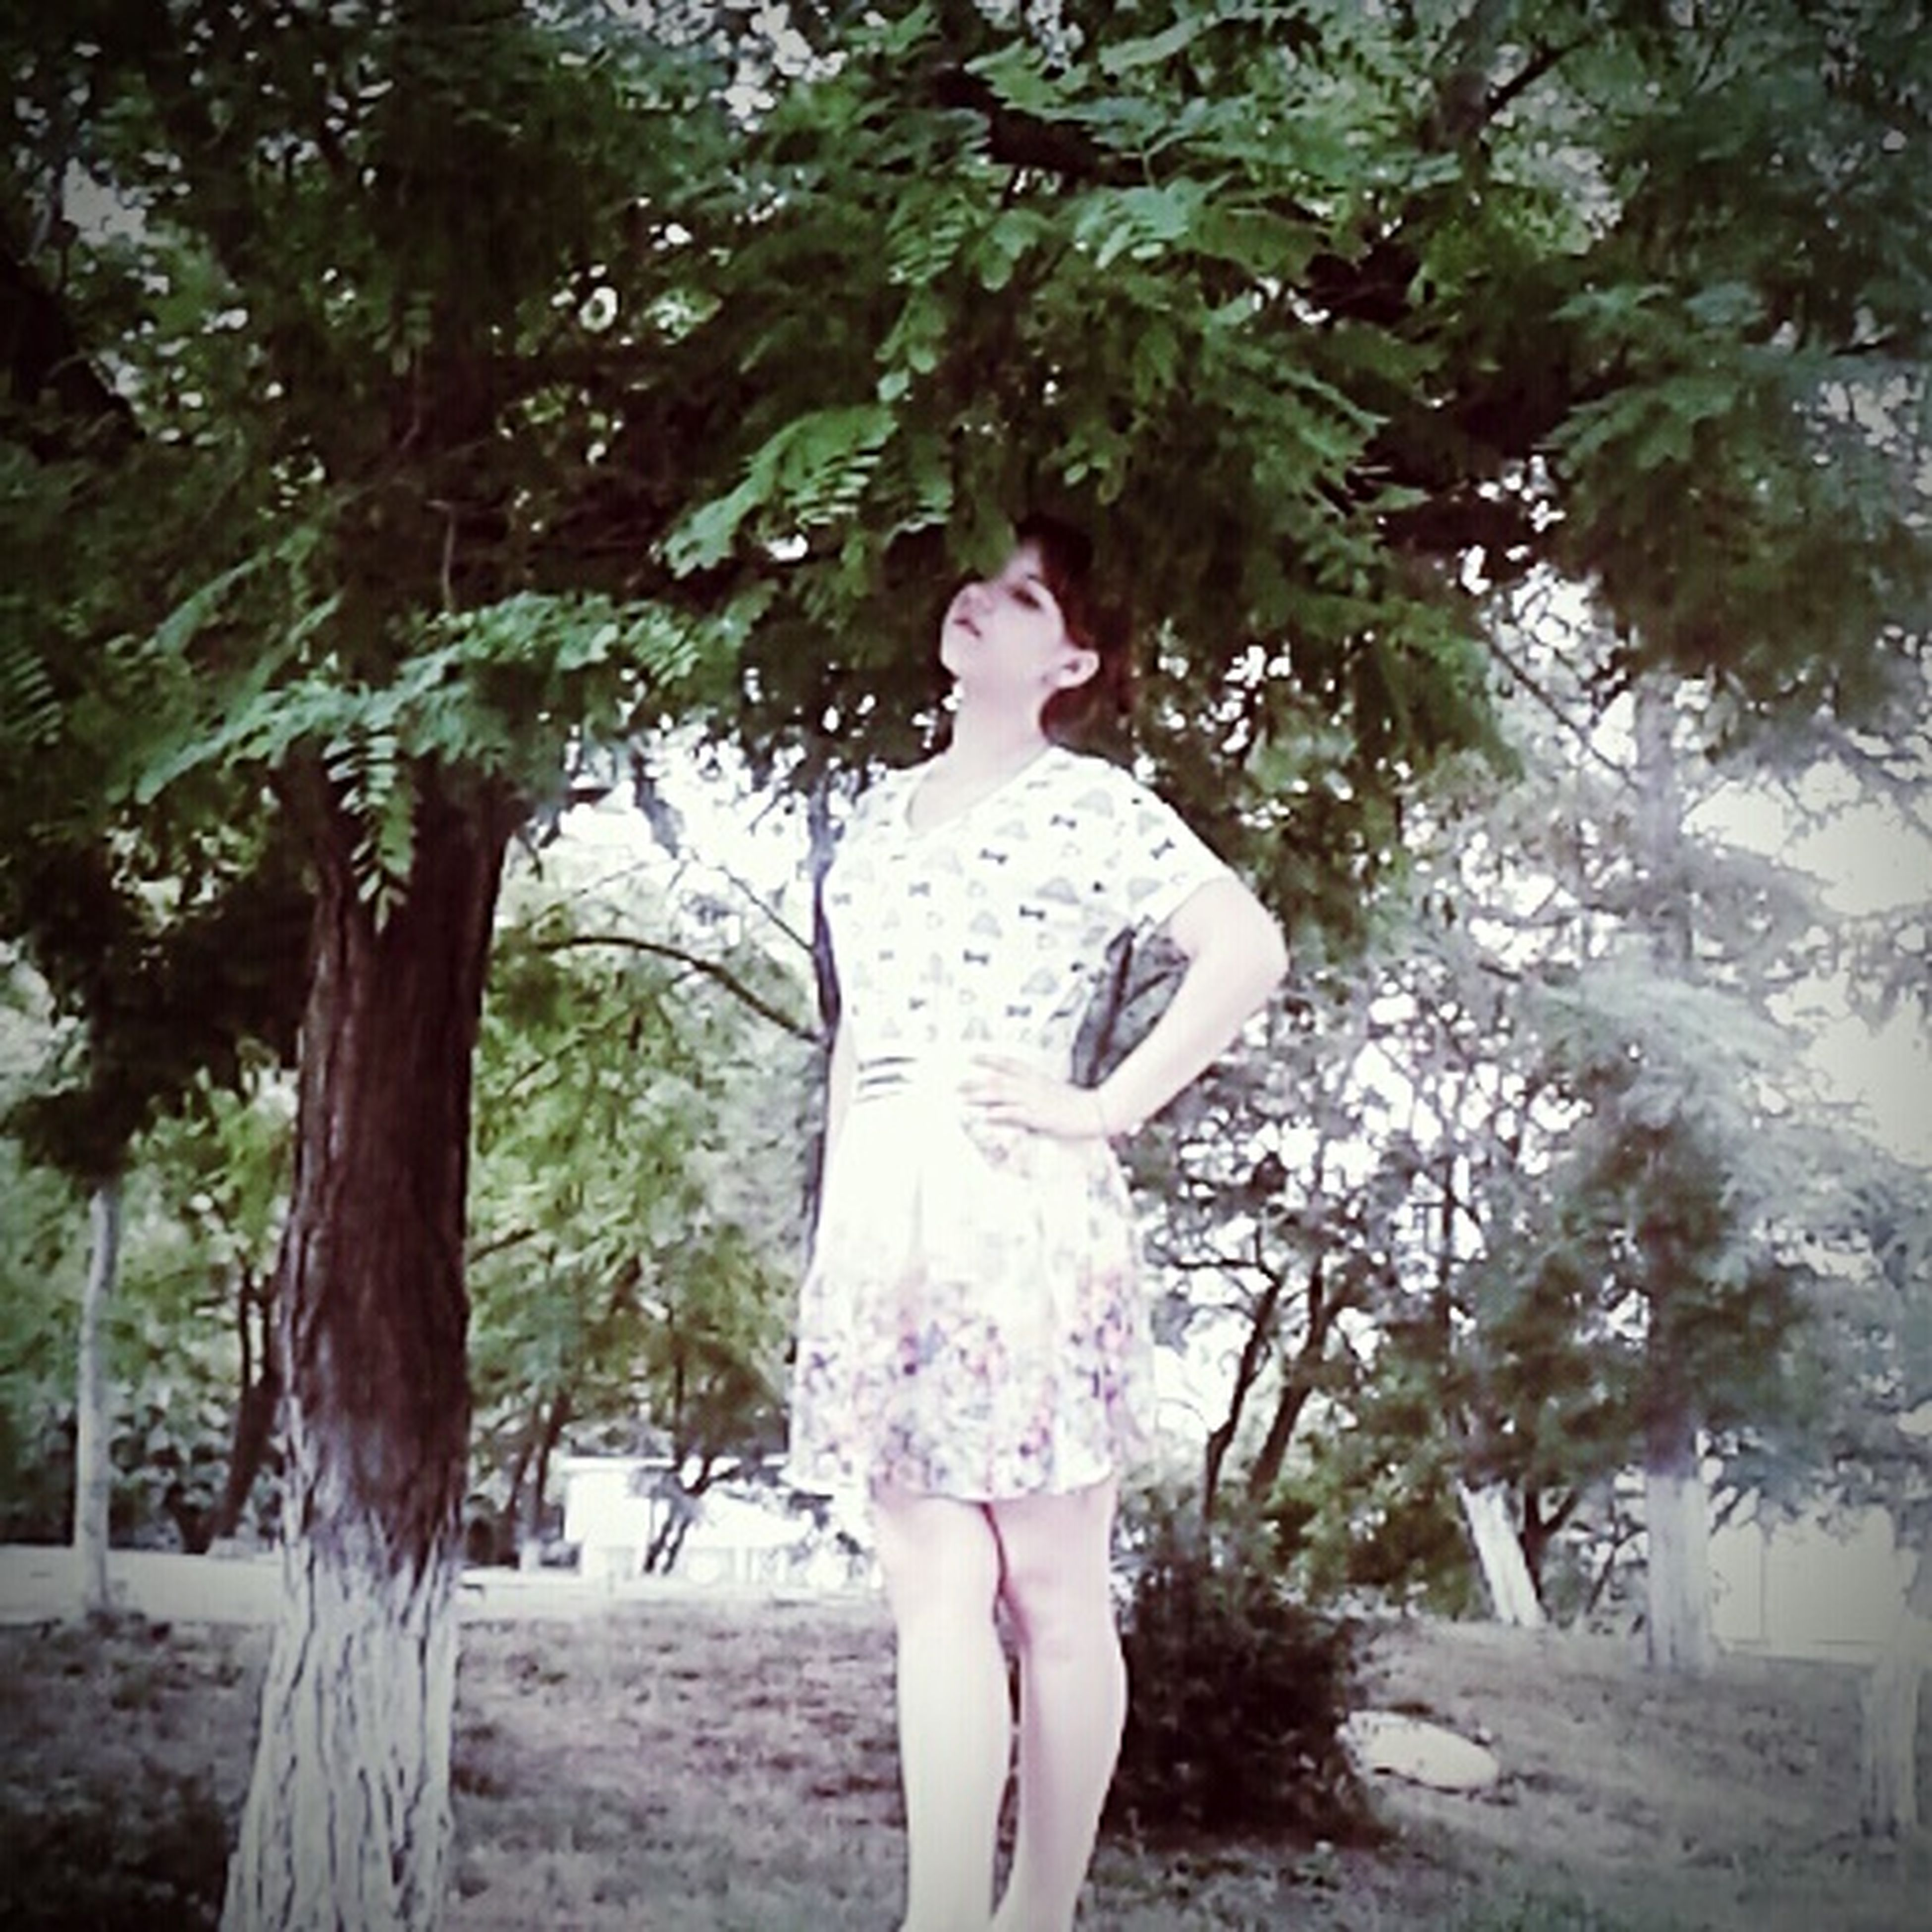 tree, lifestyles, leisure activity, standing, tree trunk, casual clothing, full length, young adult, young women, person, dress, three quarter length, sunlight, day, park - man made space, nature, rear view